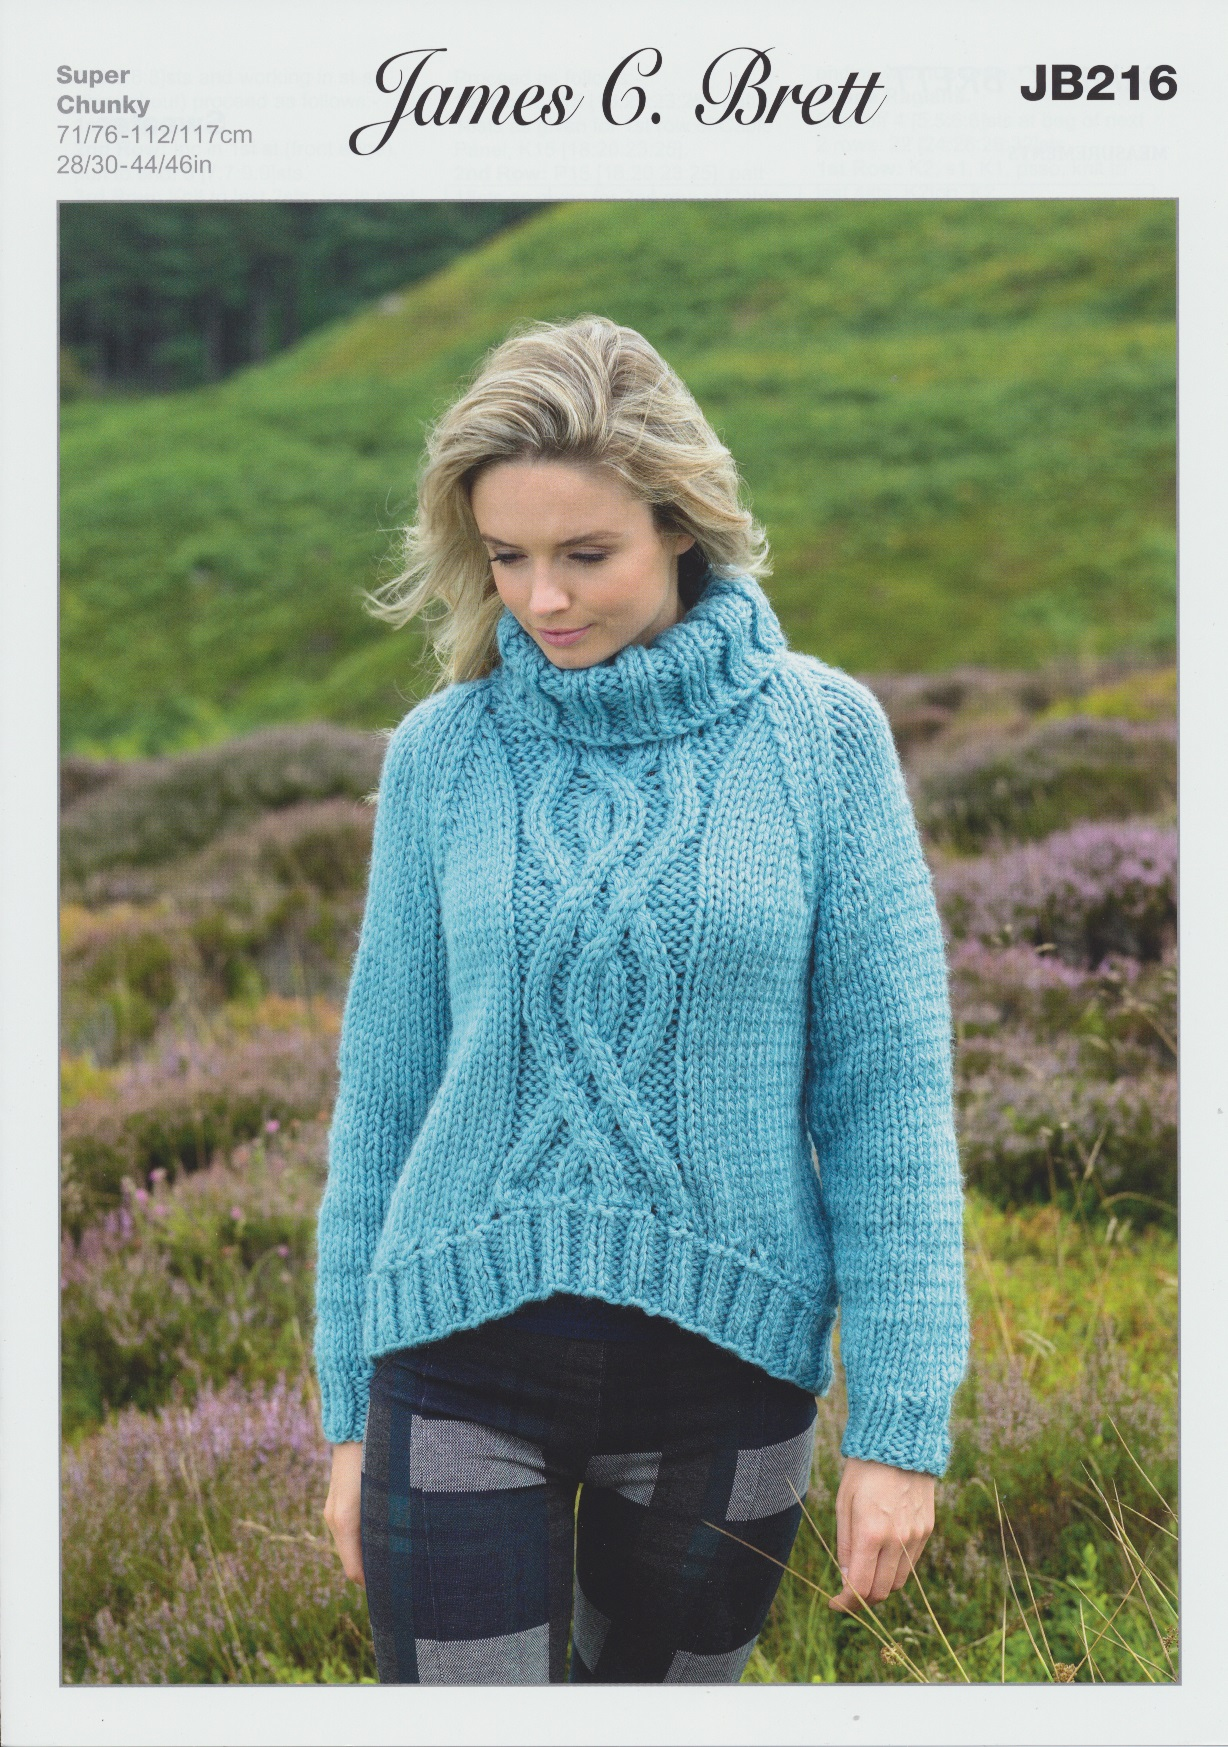 James Brett Amazon Super Chunky Knitting Pattern Womens Sweater ...